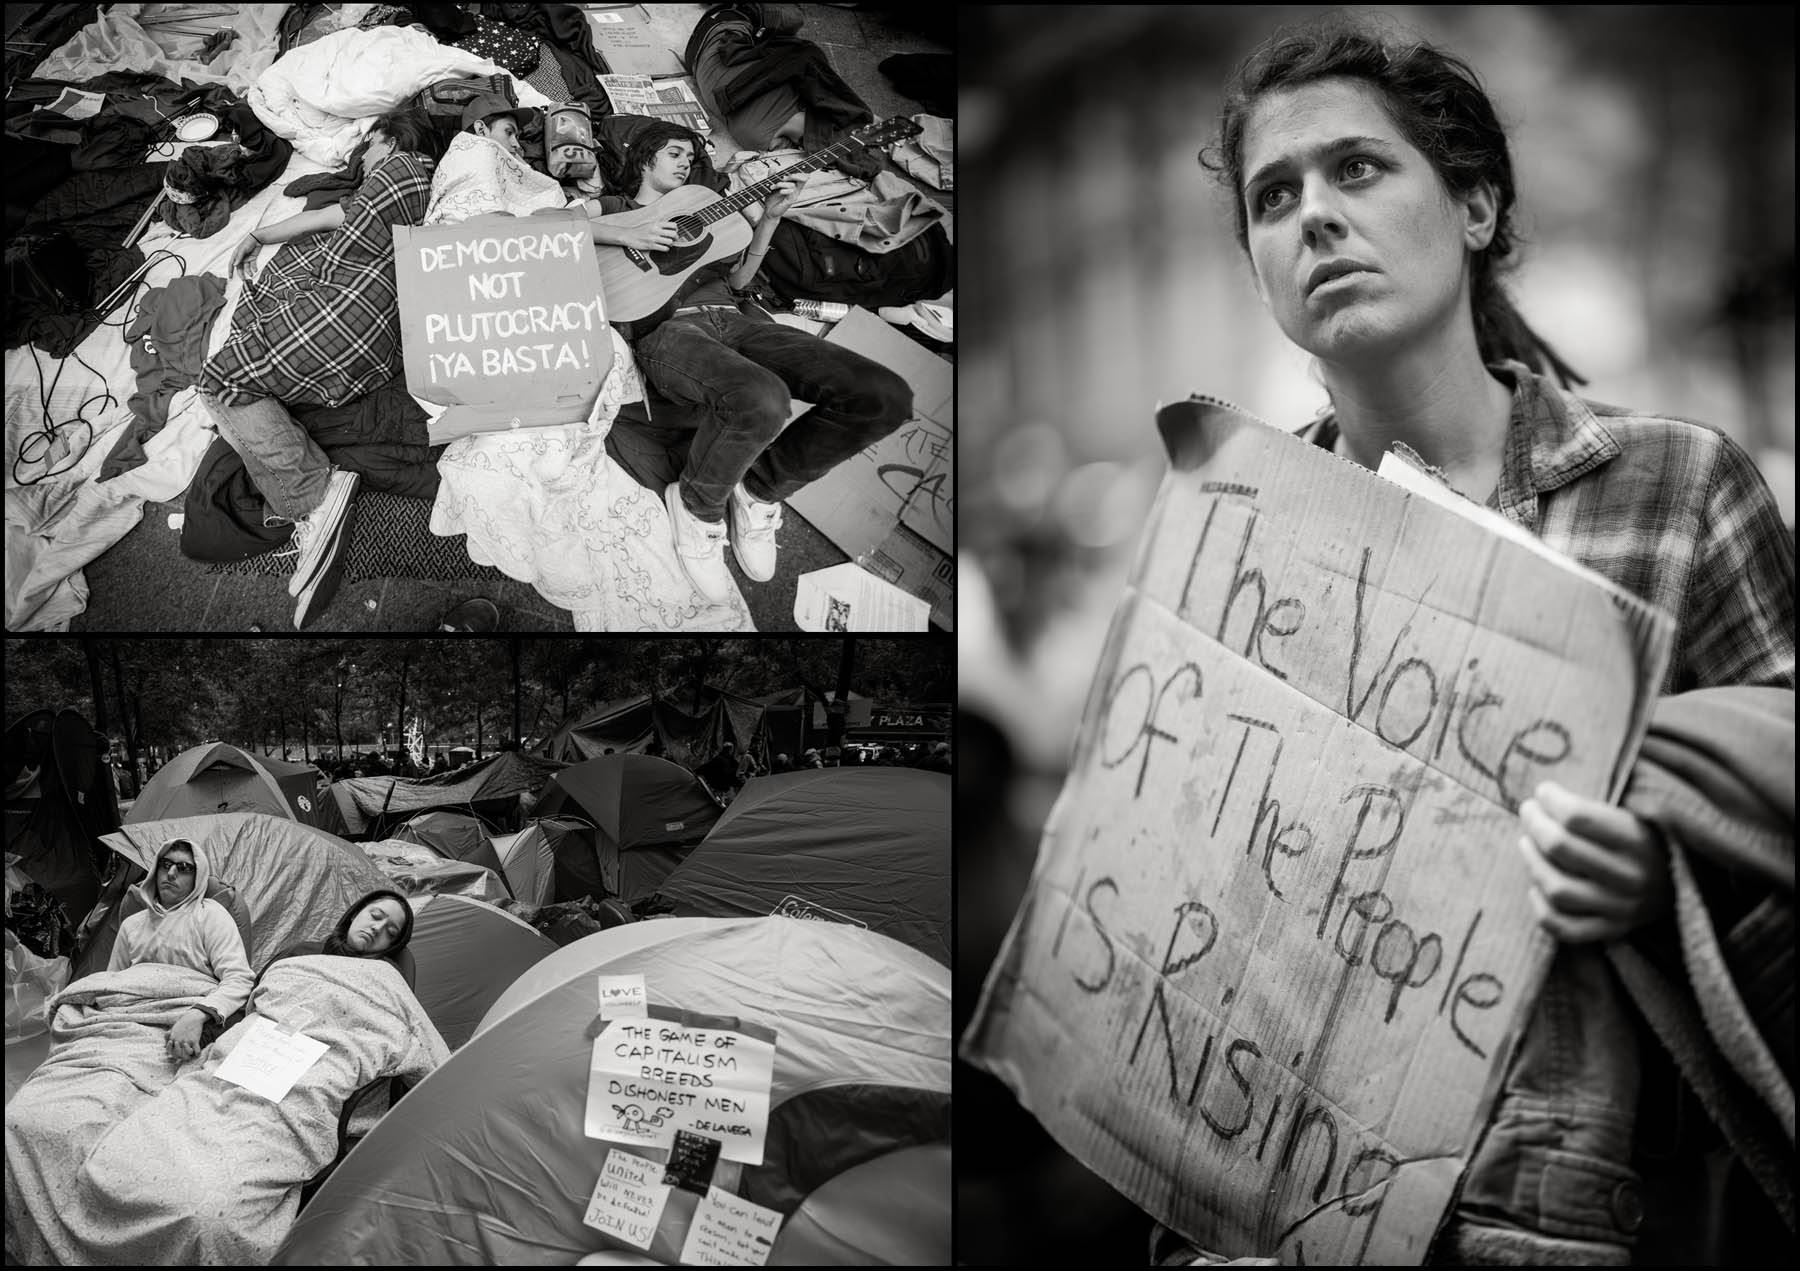 Occupy_Wall_Street002_2